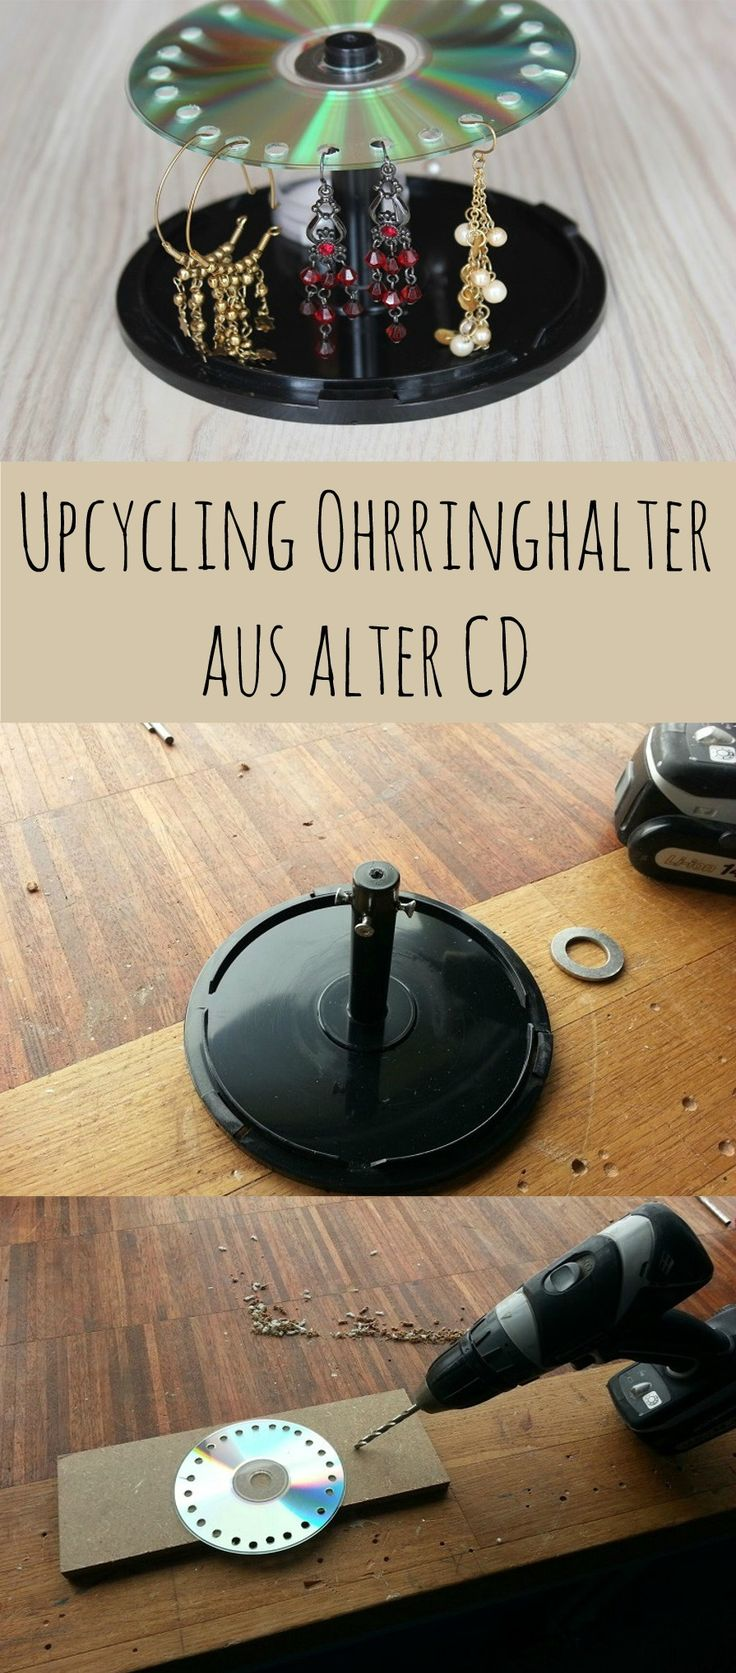 Upcycling aus alten CDs - Ohrringhalter #DIY #Upcycling Ohrringhalter #Schmuckaufbewahrung http://www.the-inspiring-life.com/2015/09/upcycling-fur-alte-cds-ohrringhalter.html